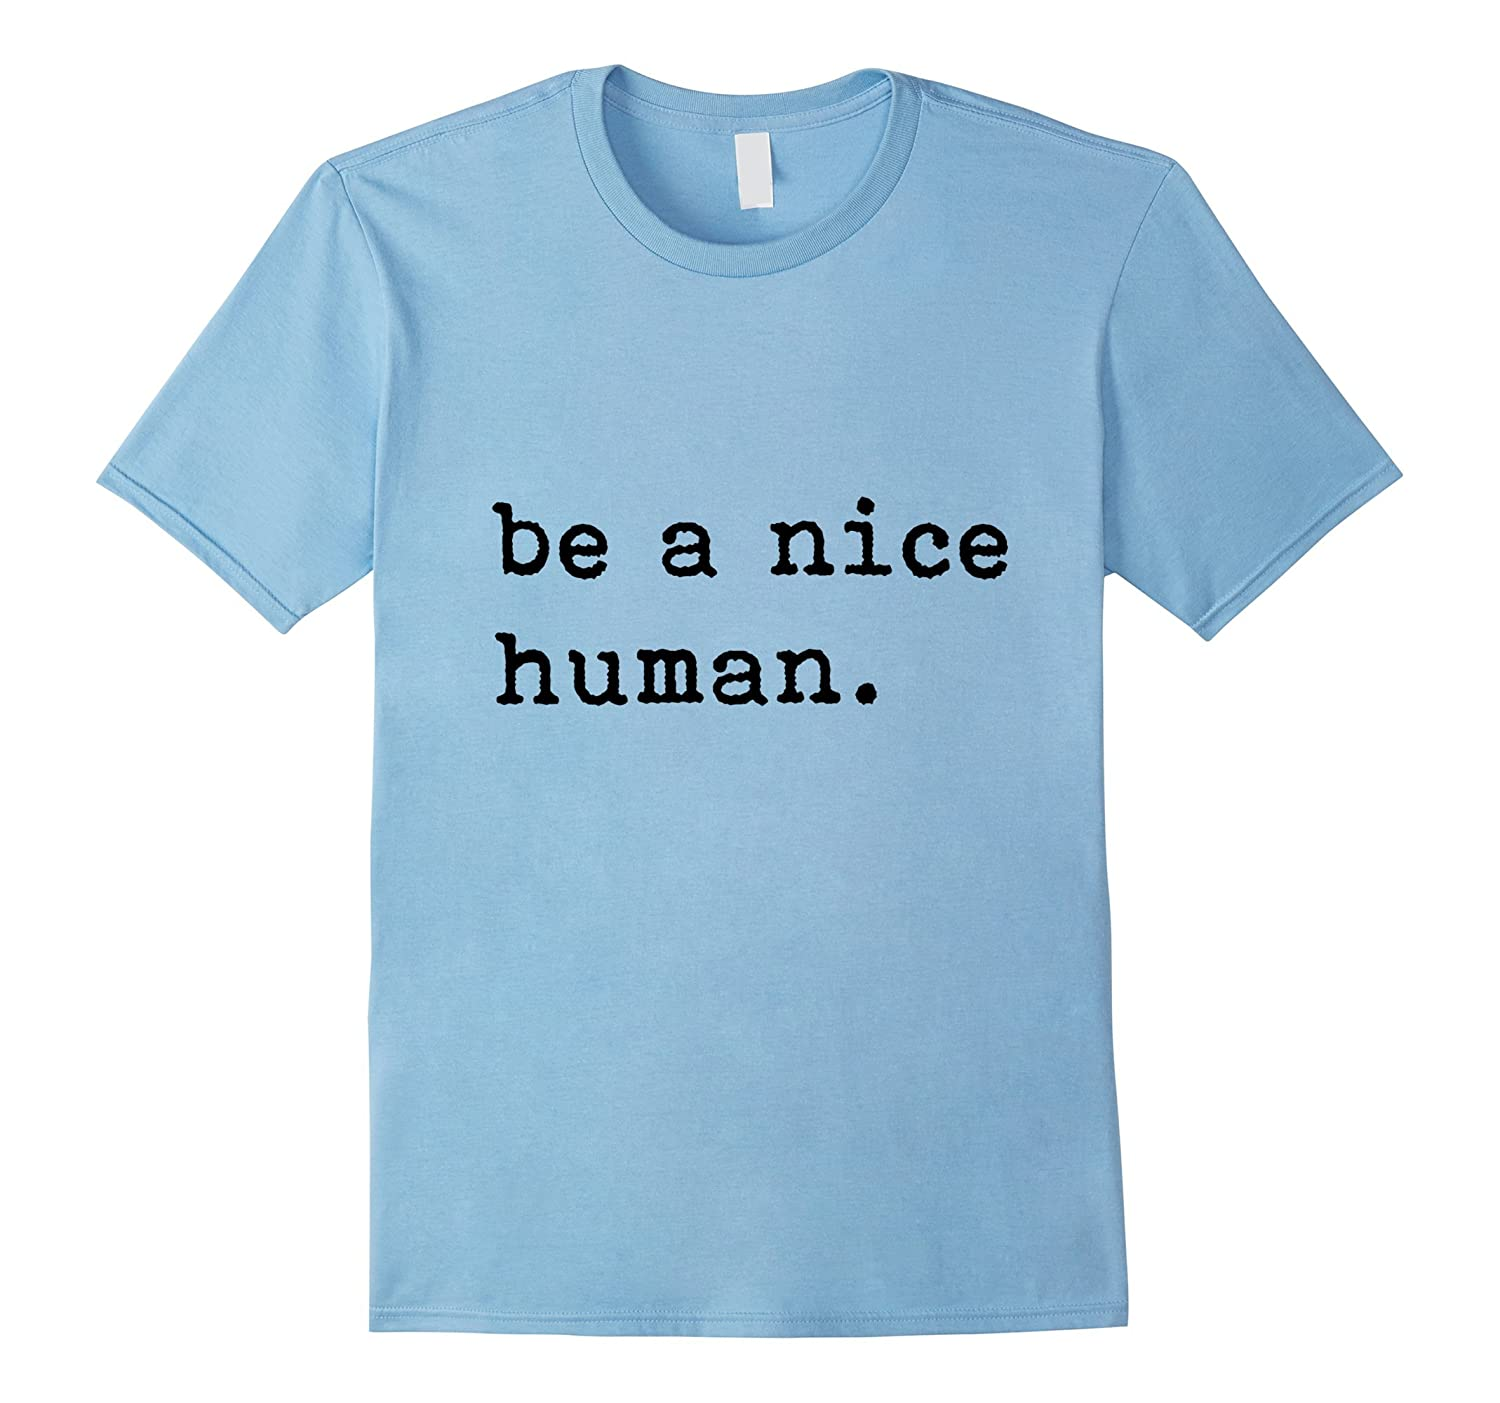 Be A Nice Human T-Shirt - Be Kind - Good Person-CL